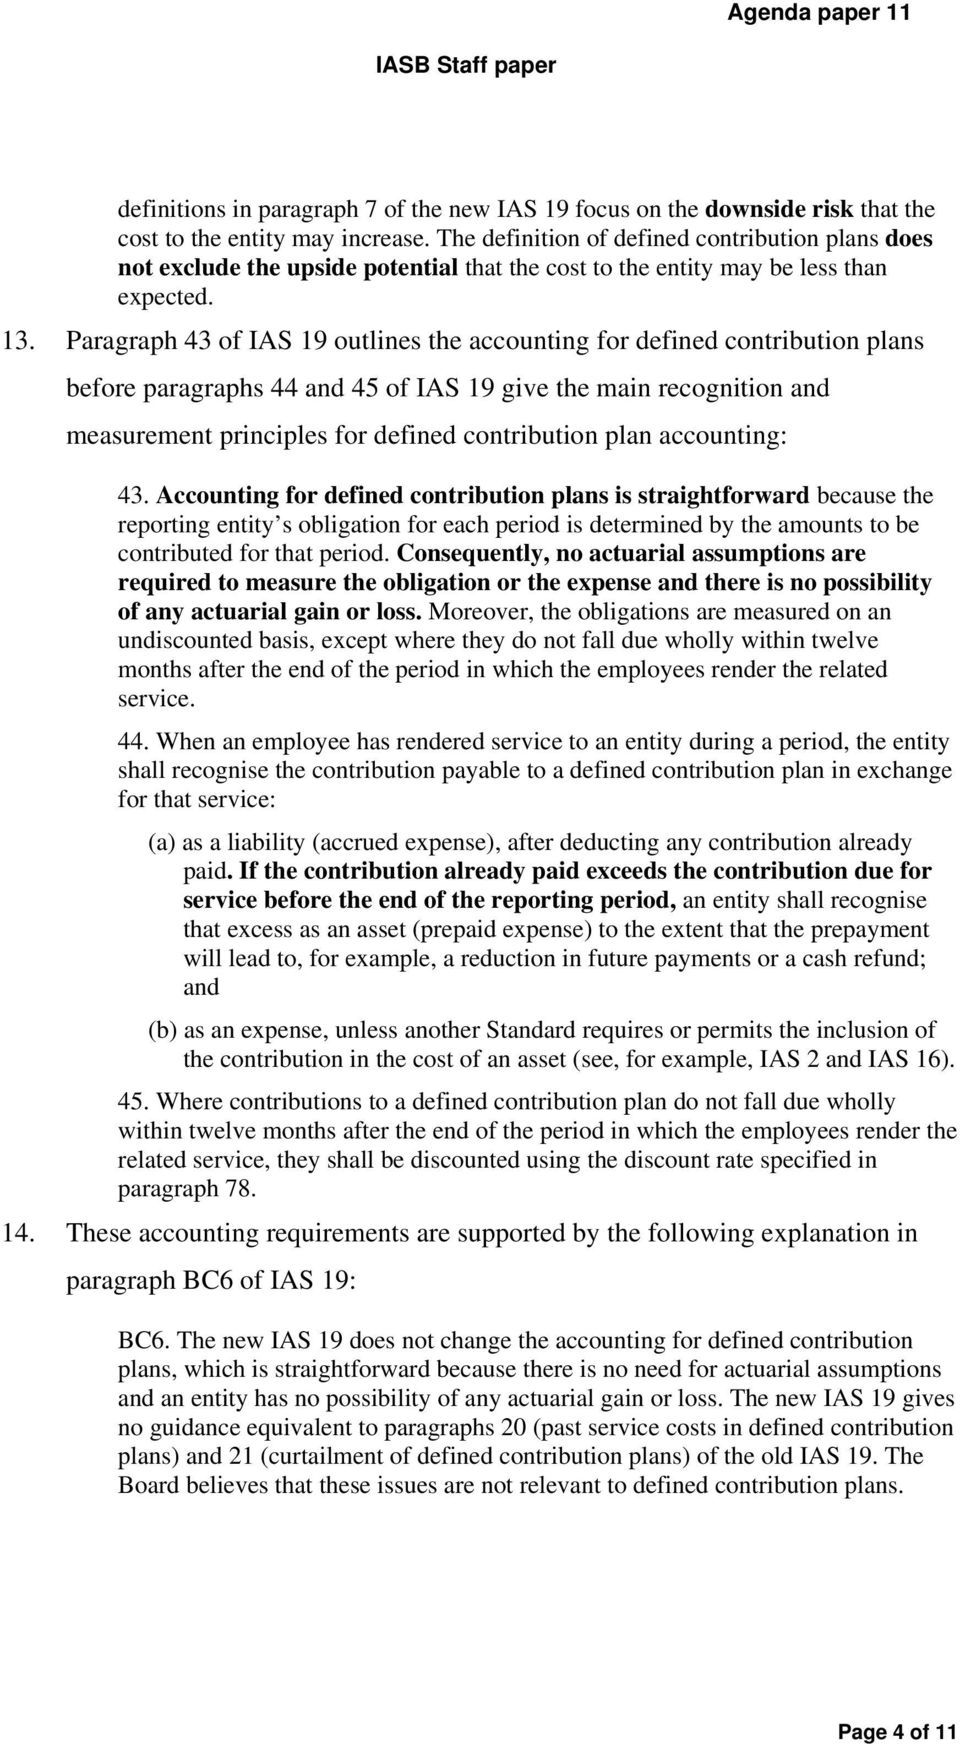 Paragraph 43 of IAS 19 outlines the accounting for defined contribution plans before paragraphs 44 and 45 of IAS 19 give the main recognition and measurement principles for defined contribution plan